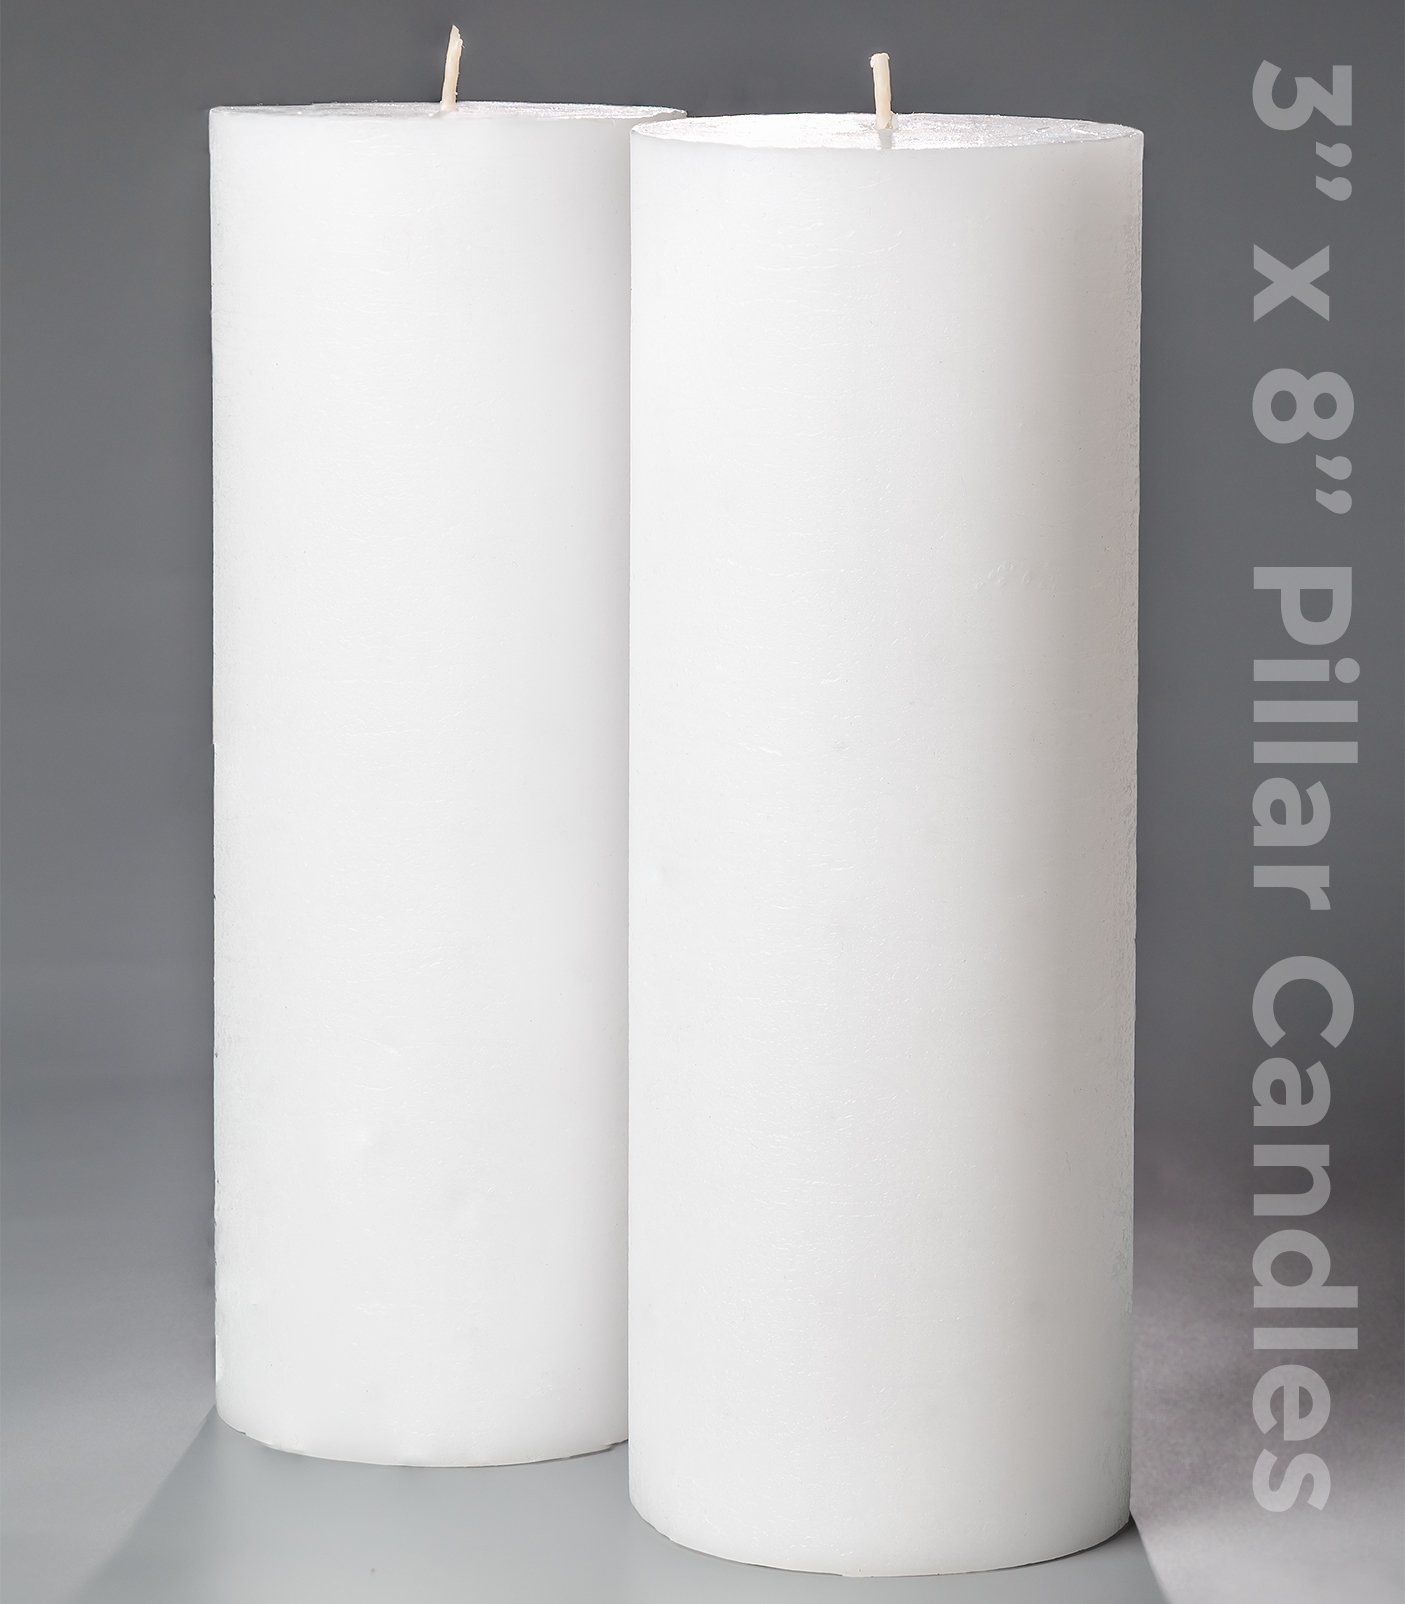 """3"""" x 8"""" White Pillar Candles Set of 2 Unscented for Weddings Home Decoration Church Restaurant Spa Smokeless Cotton Wick"""